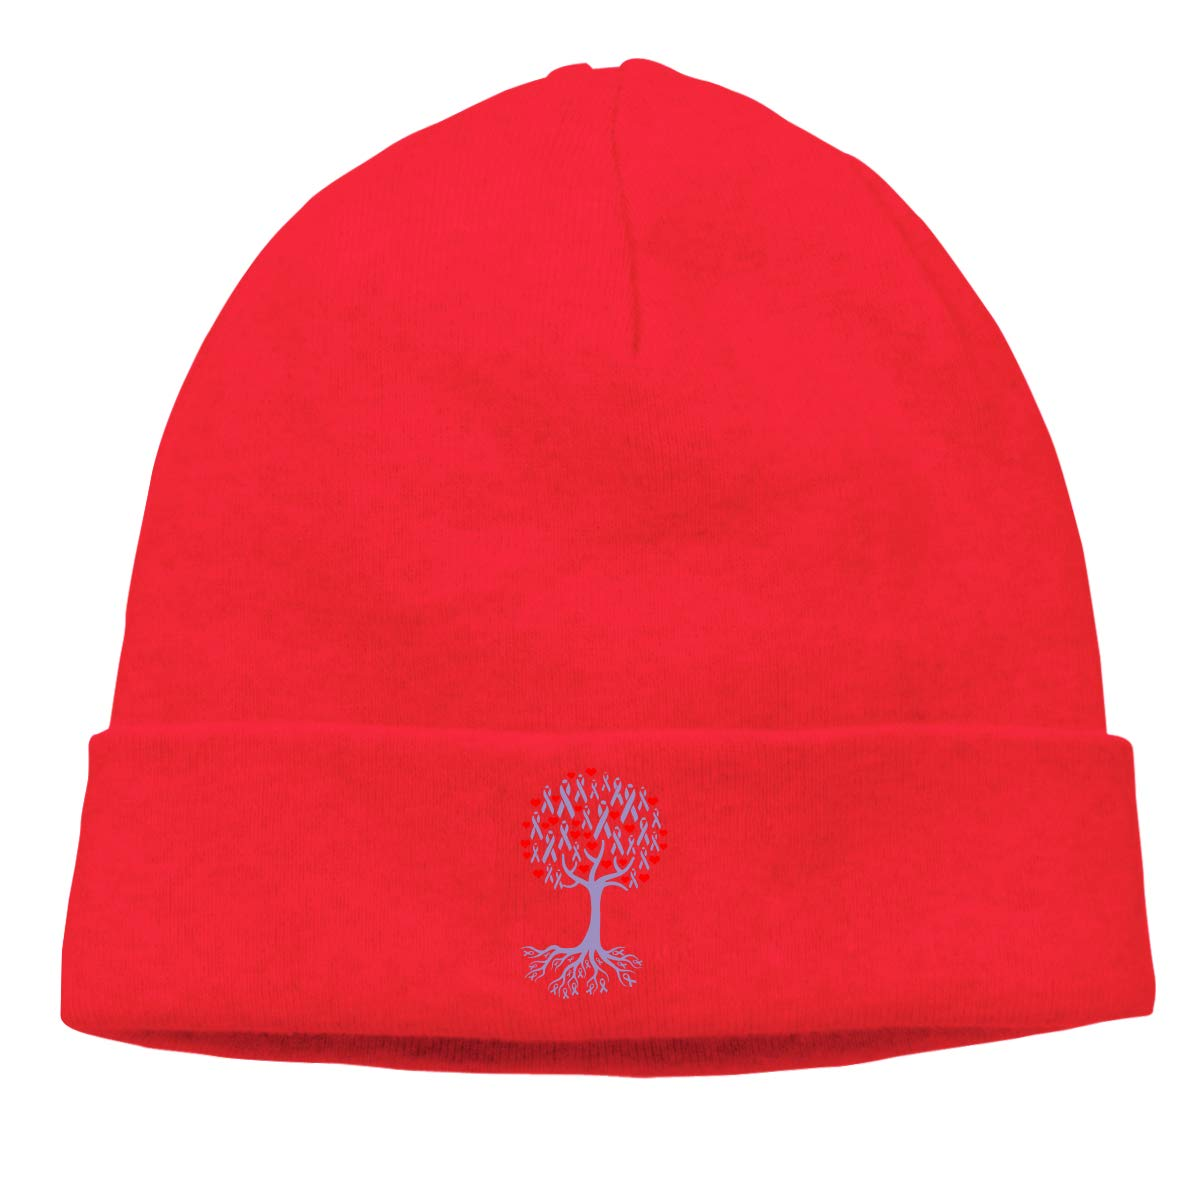 E6EP9E Testicular Cancer Awareness Tree Roots Warm Skiing Skull Cap Mens Womens Camping Thin Beanie